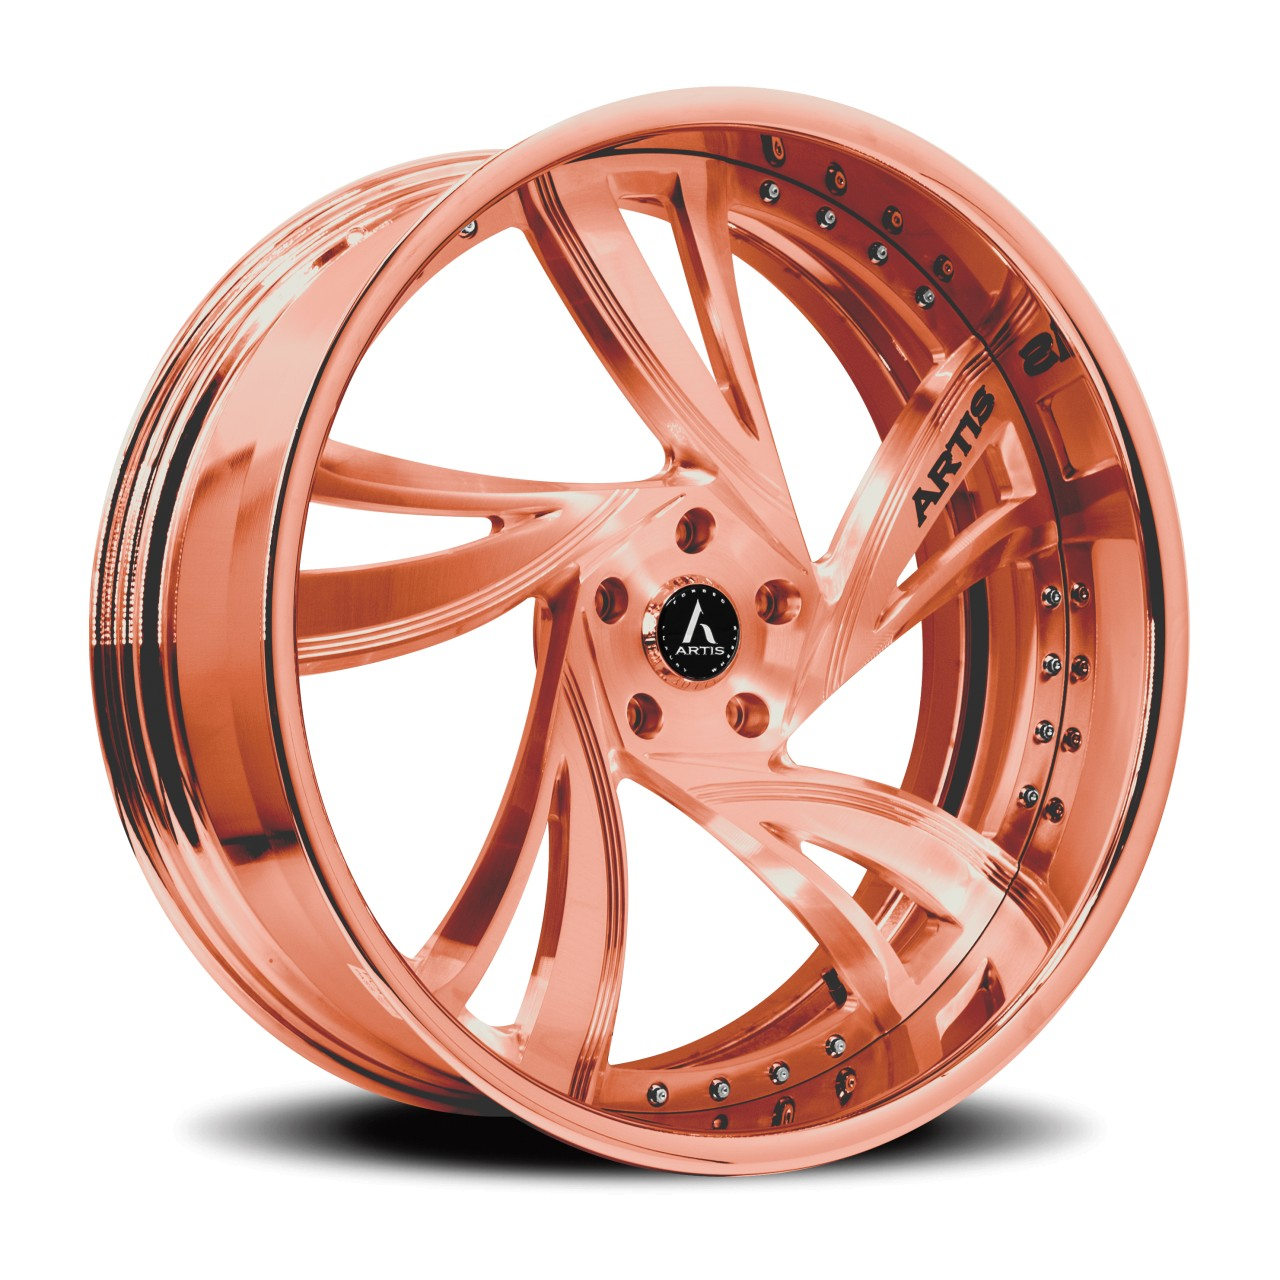 Artis Forged Kingston wheel with Rose Gold finish